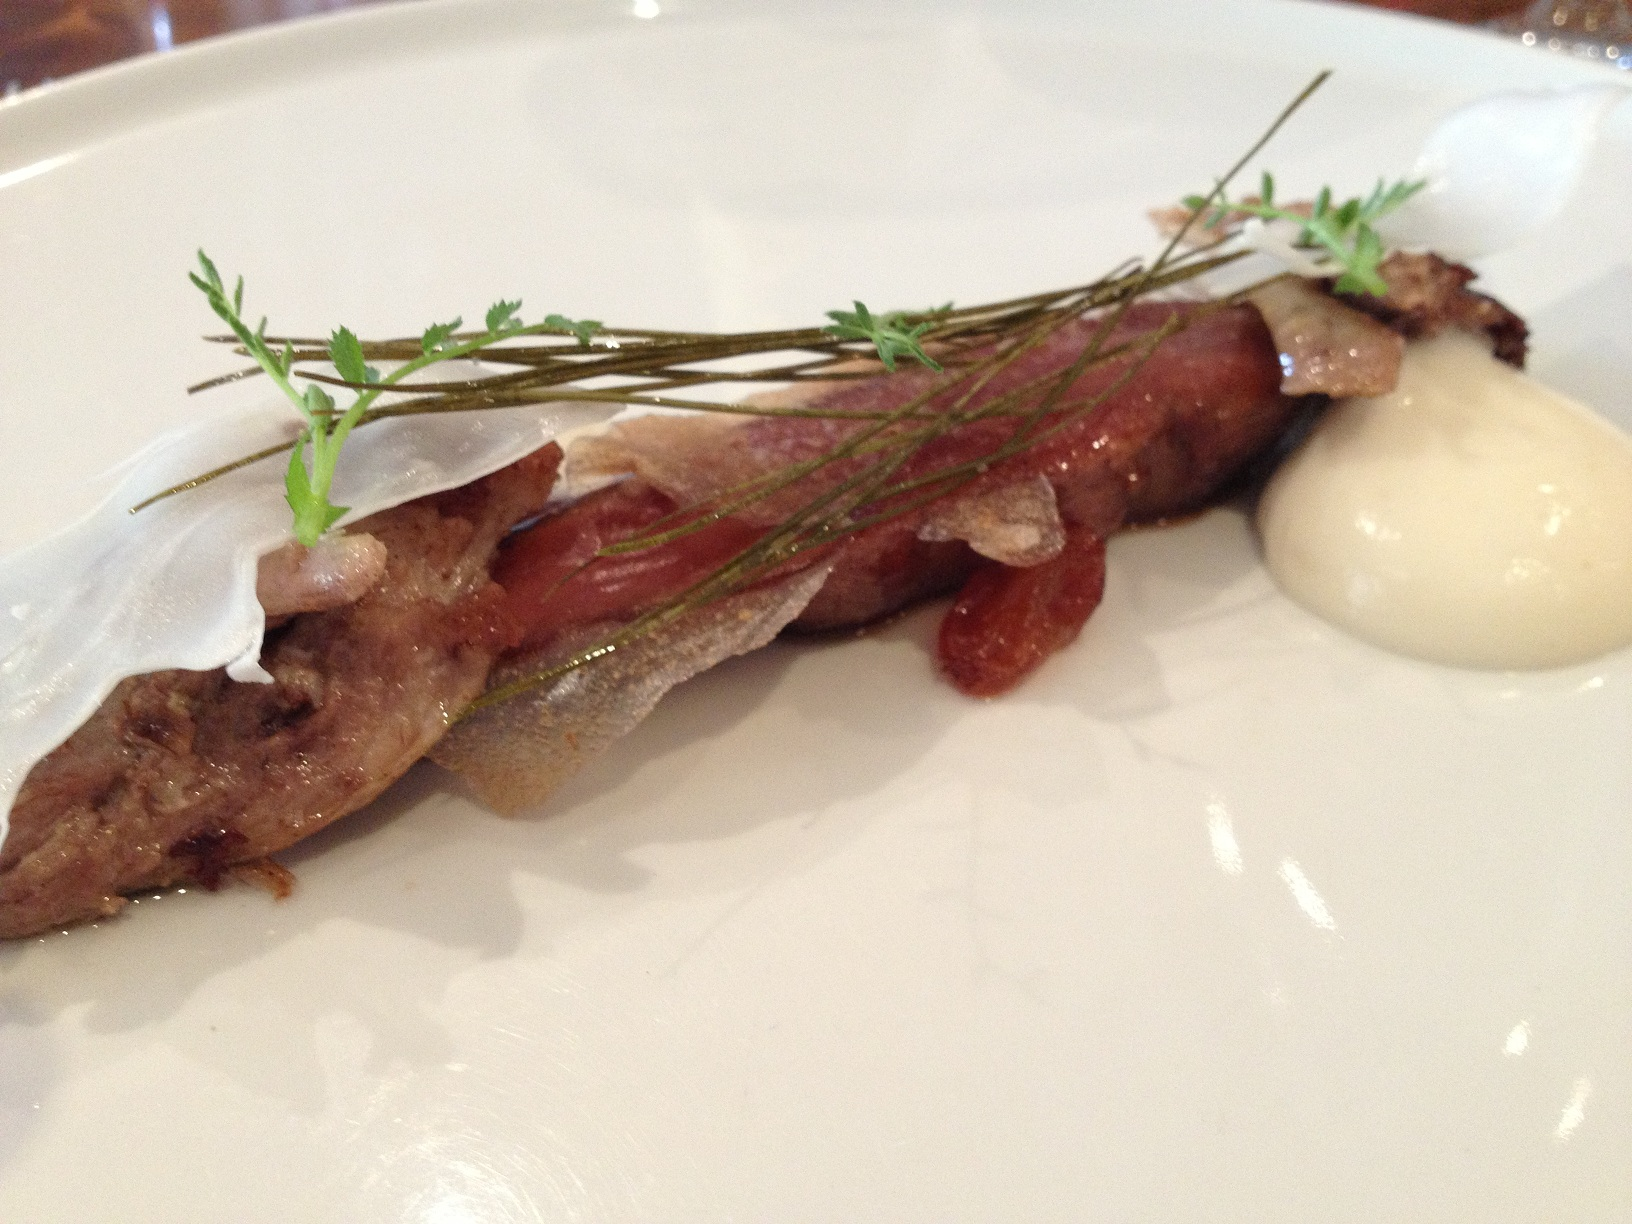 thirlmere duck, cauliflower, white raisins, pear & pine needles resized